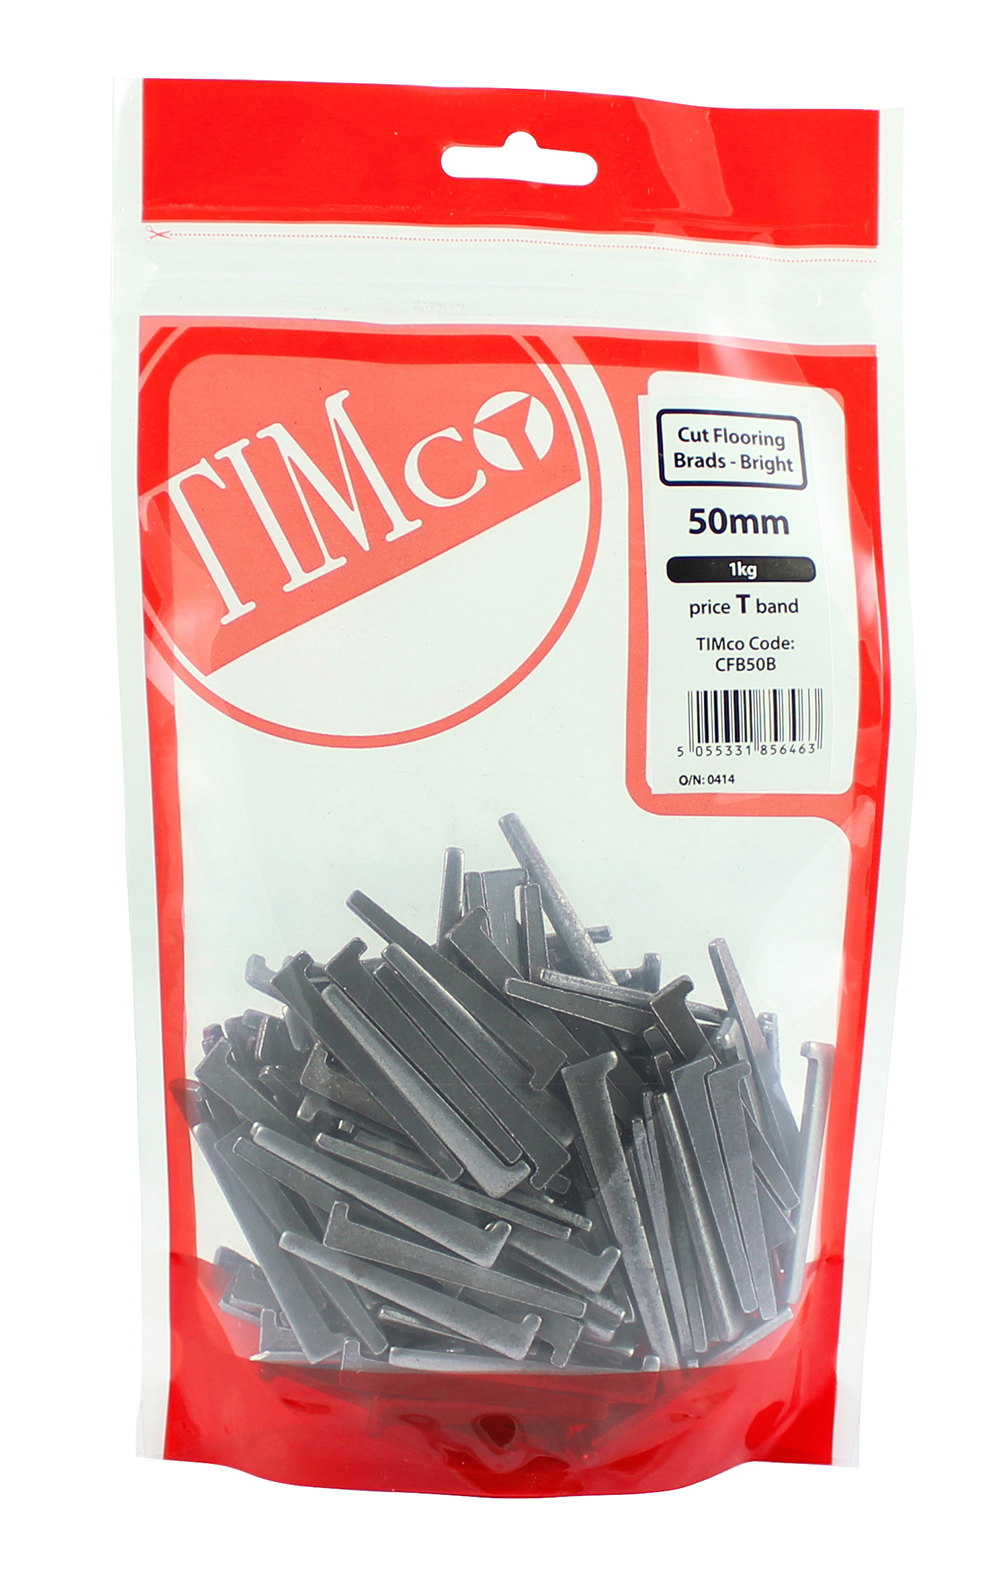 TIMco 50mm Cut Flooring Brad - Bright 1kg Bag